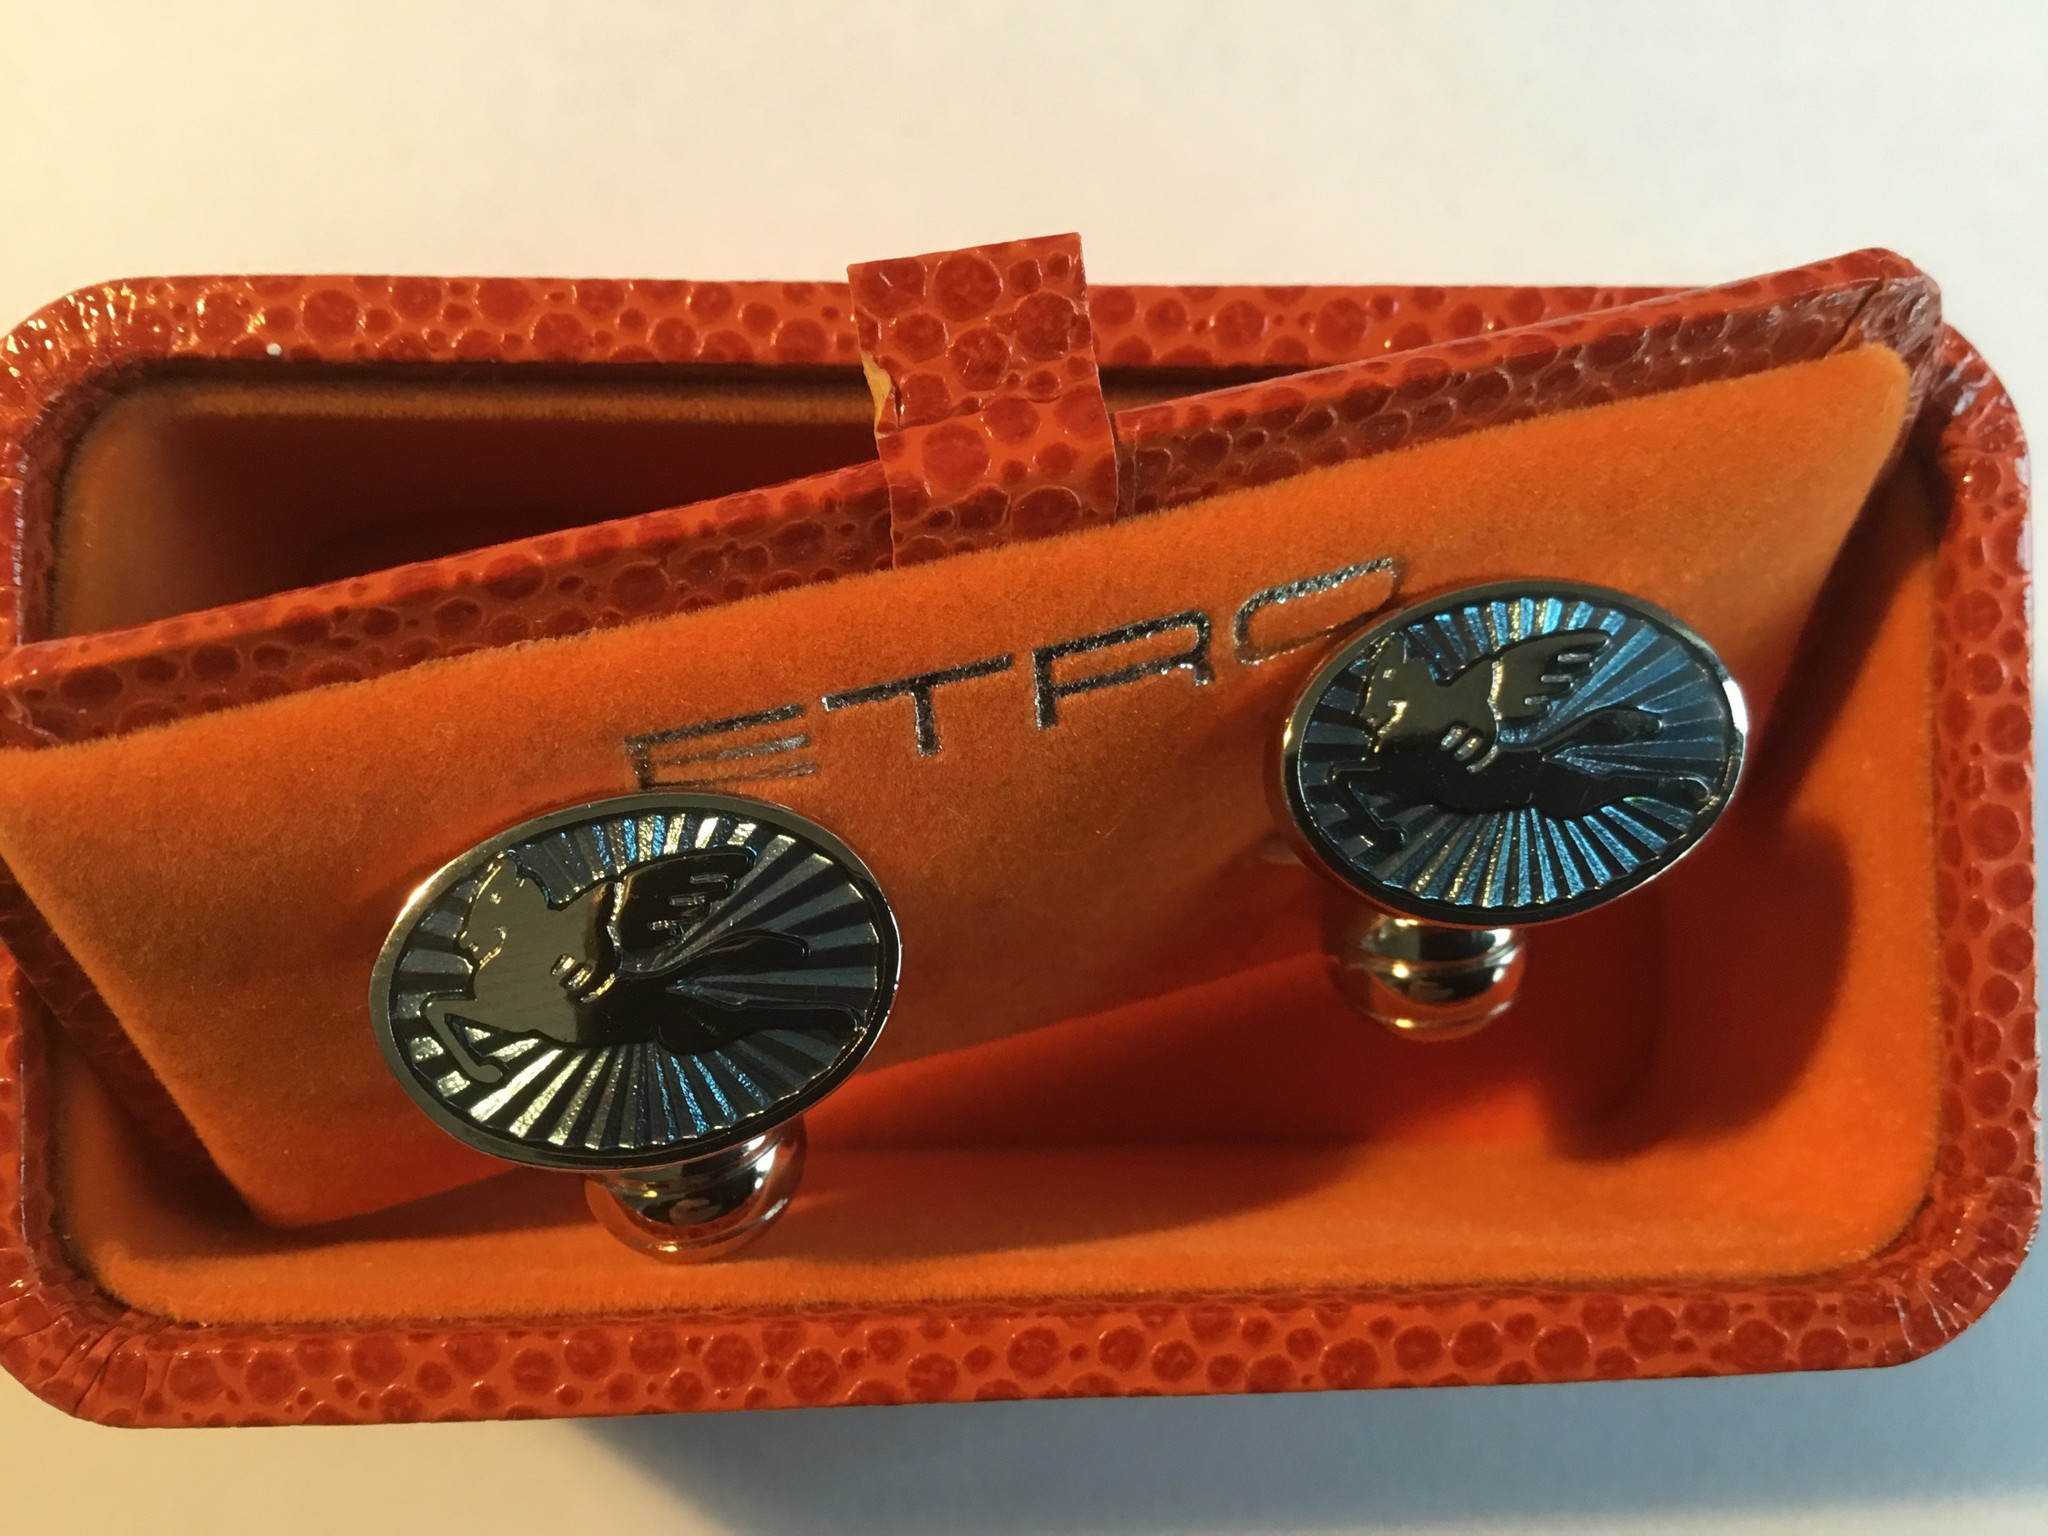 ETRO Cufflinks Light Blue Enamel Silver Winged Horses Ferrari